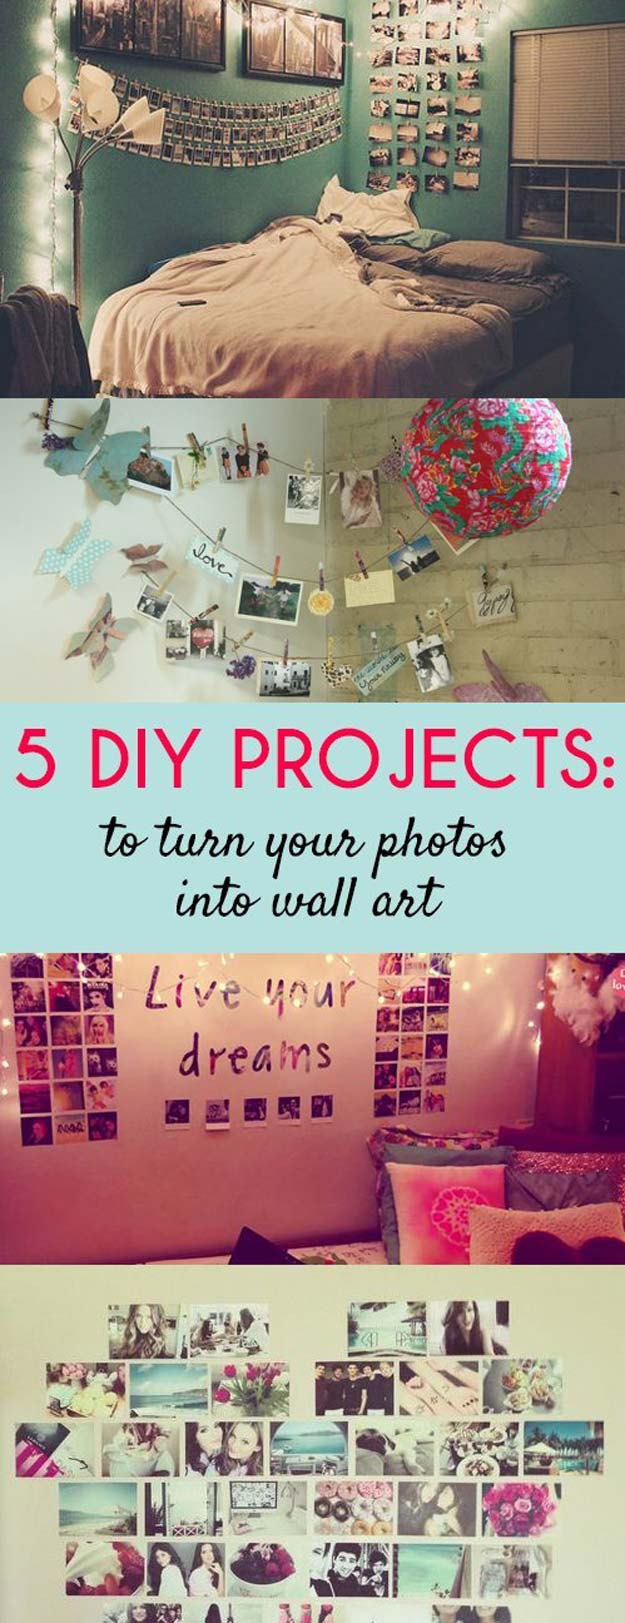 Cool DIY Photo Projects and Craft Ideas for Photos - Wall Art - Easy Ideas for Wall Art, Collage and DIY Gifts for Friends. Wood, Cardboard, Canvas, Instagram Art and Frames. Creative Birthday Ideas and Home Decor for Adults, Teens and Tweens